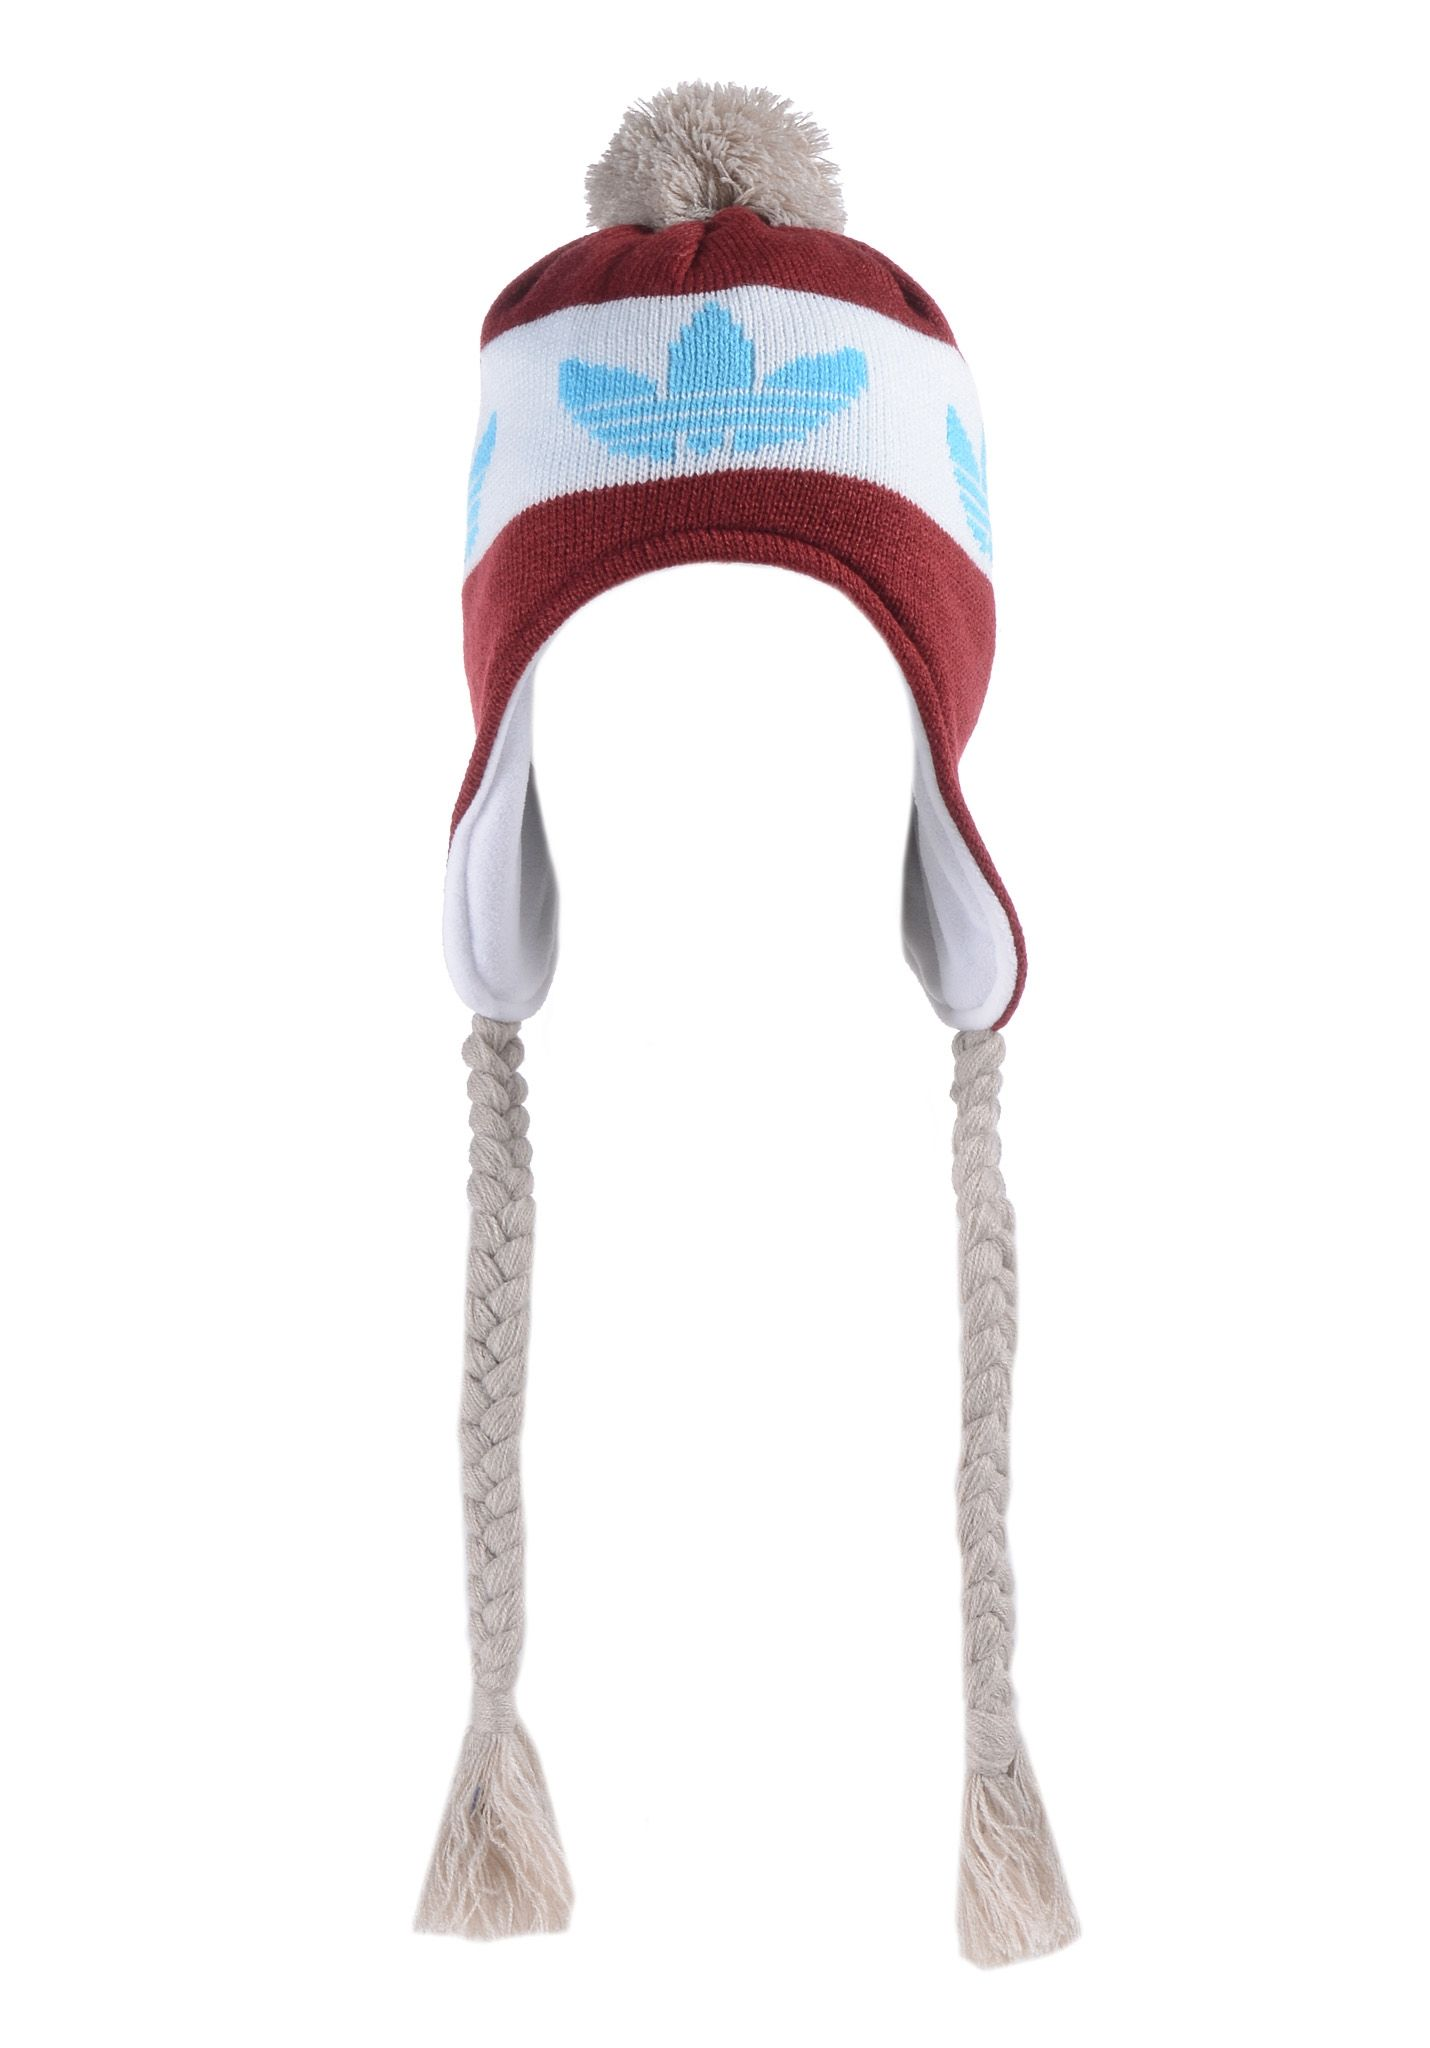 a9bfe36cad8 ADIDAS Peruvian Style - Beanie for Men - Red - Planet Sports